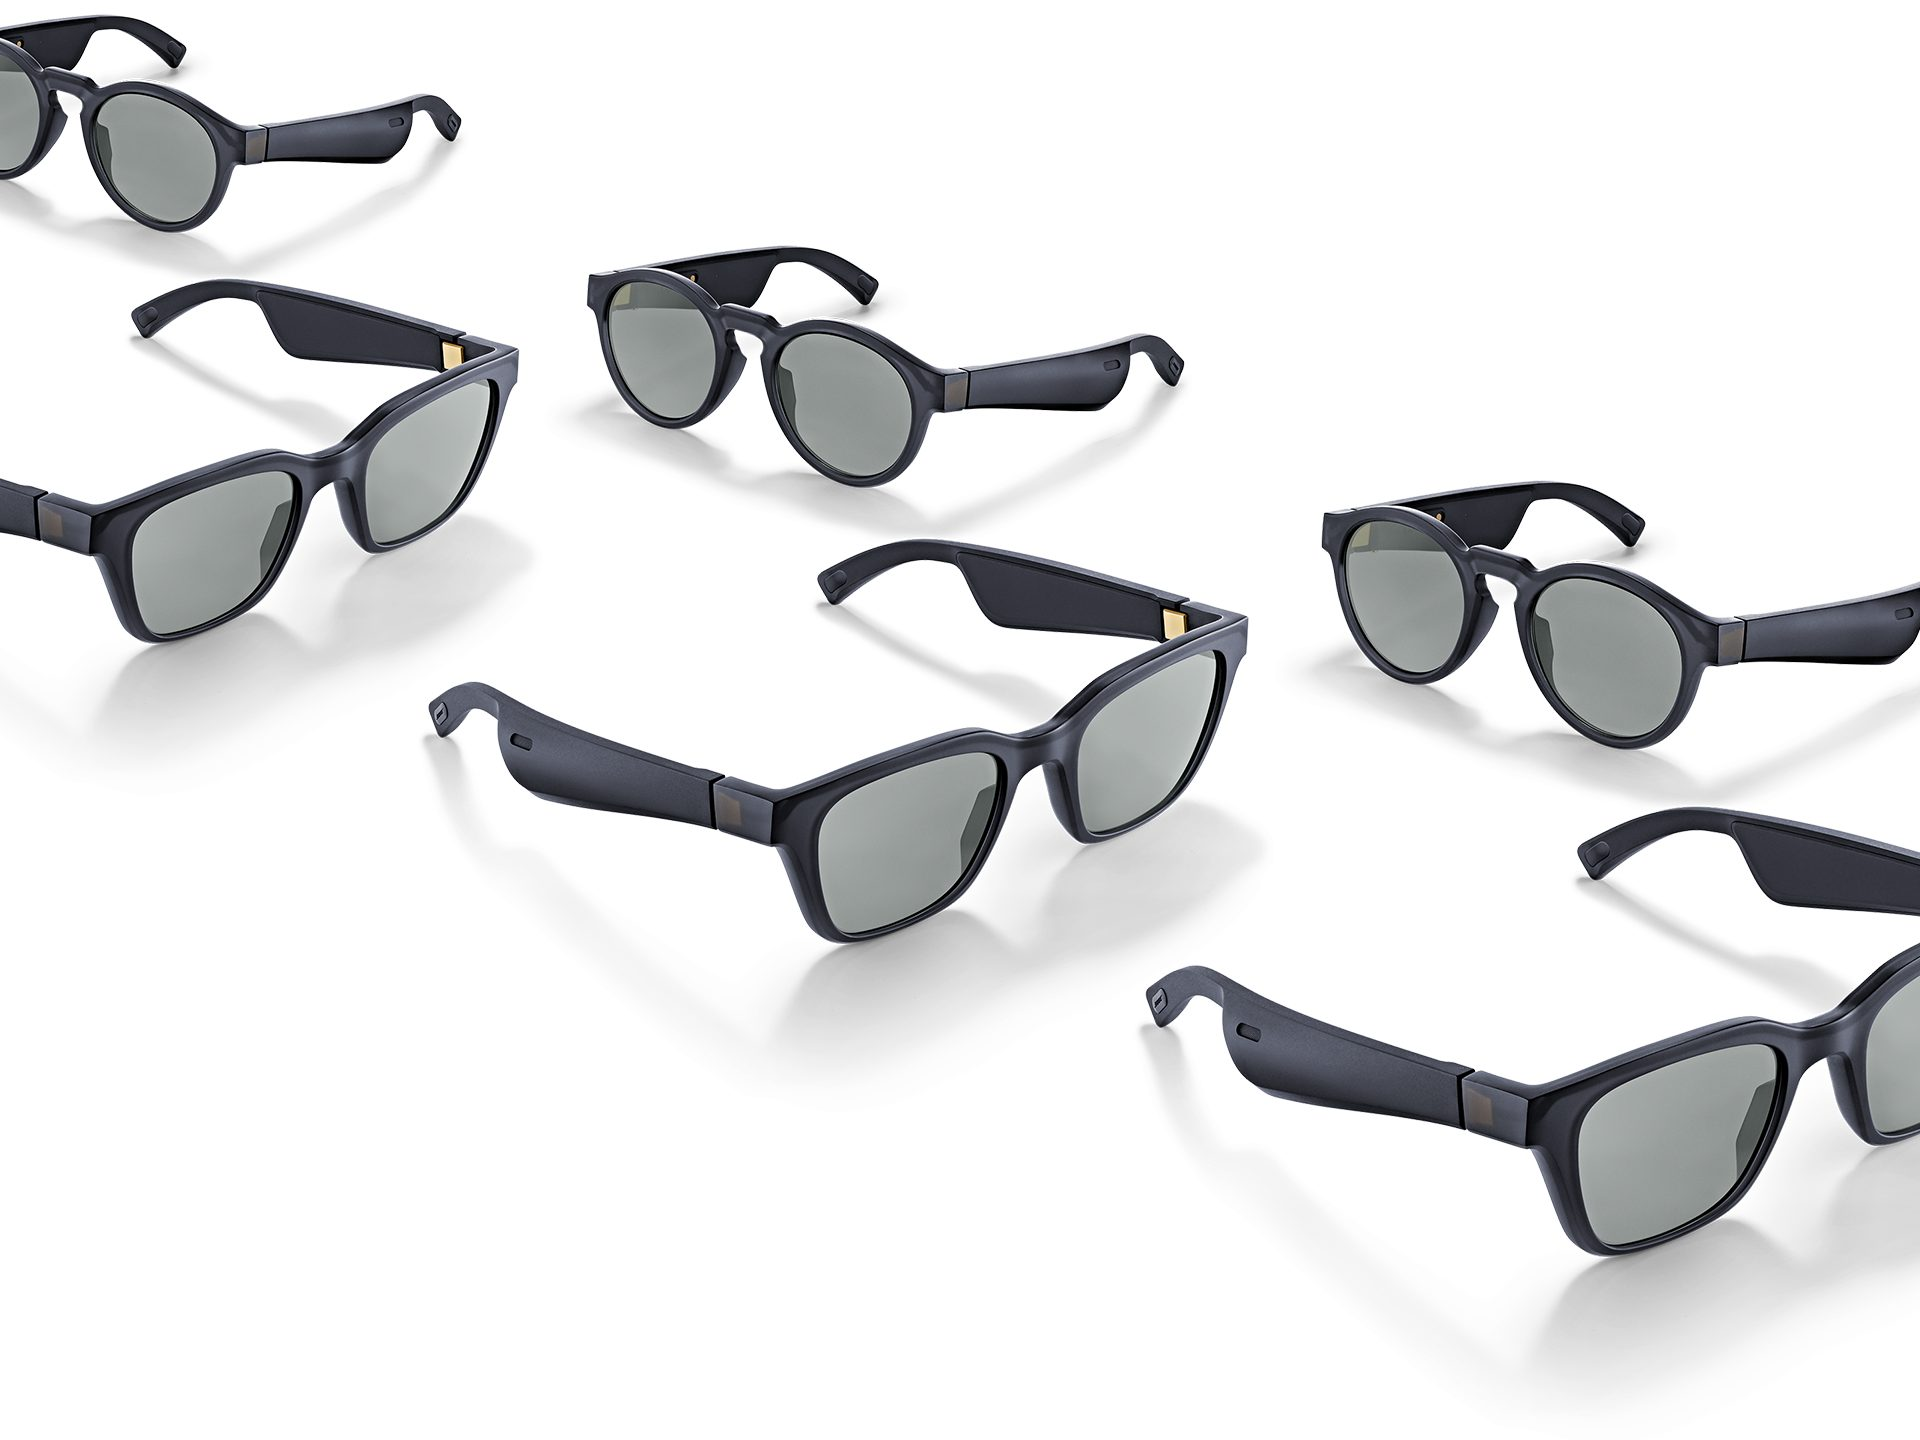 39289c1cf9a Stylish Sunglasses Embedded With Tiny Bose Speakers